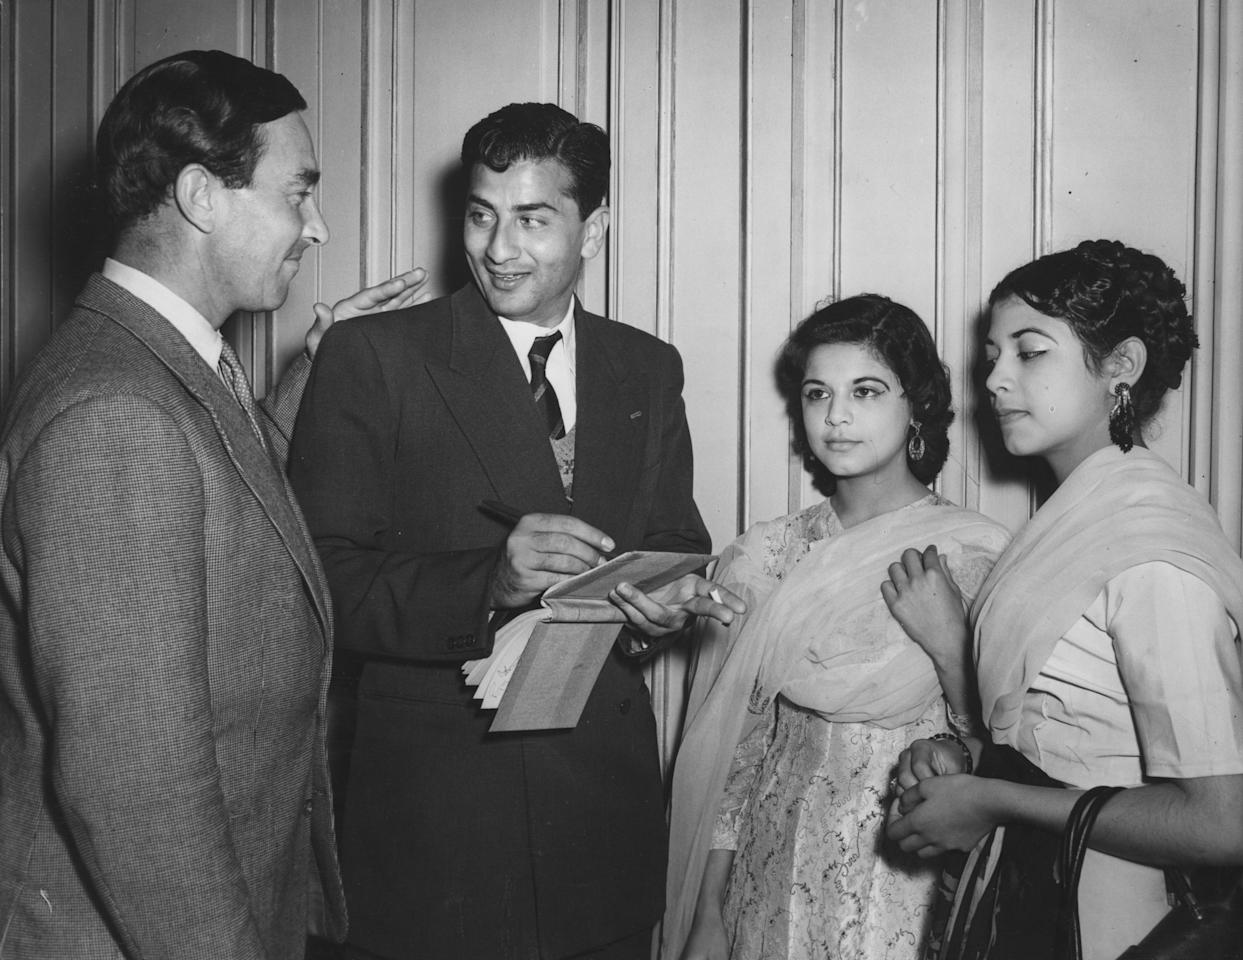 18th August 1954:  Pakistani bowler Fazal Mahmood signs autographs for Najma and Salma Husain, the daughters of Pakistan's Ambassador to Rome, as England cricketer Denis Compton pats him on the back, during a reception for the Pakistan cricket team at the Pakistan High Commissioner's Office in London to celebrate their victory against England in the final Test match at the Oval.  (Photo by Keystone/Getty Images)